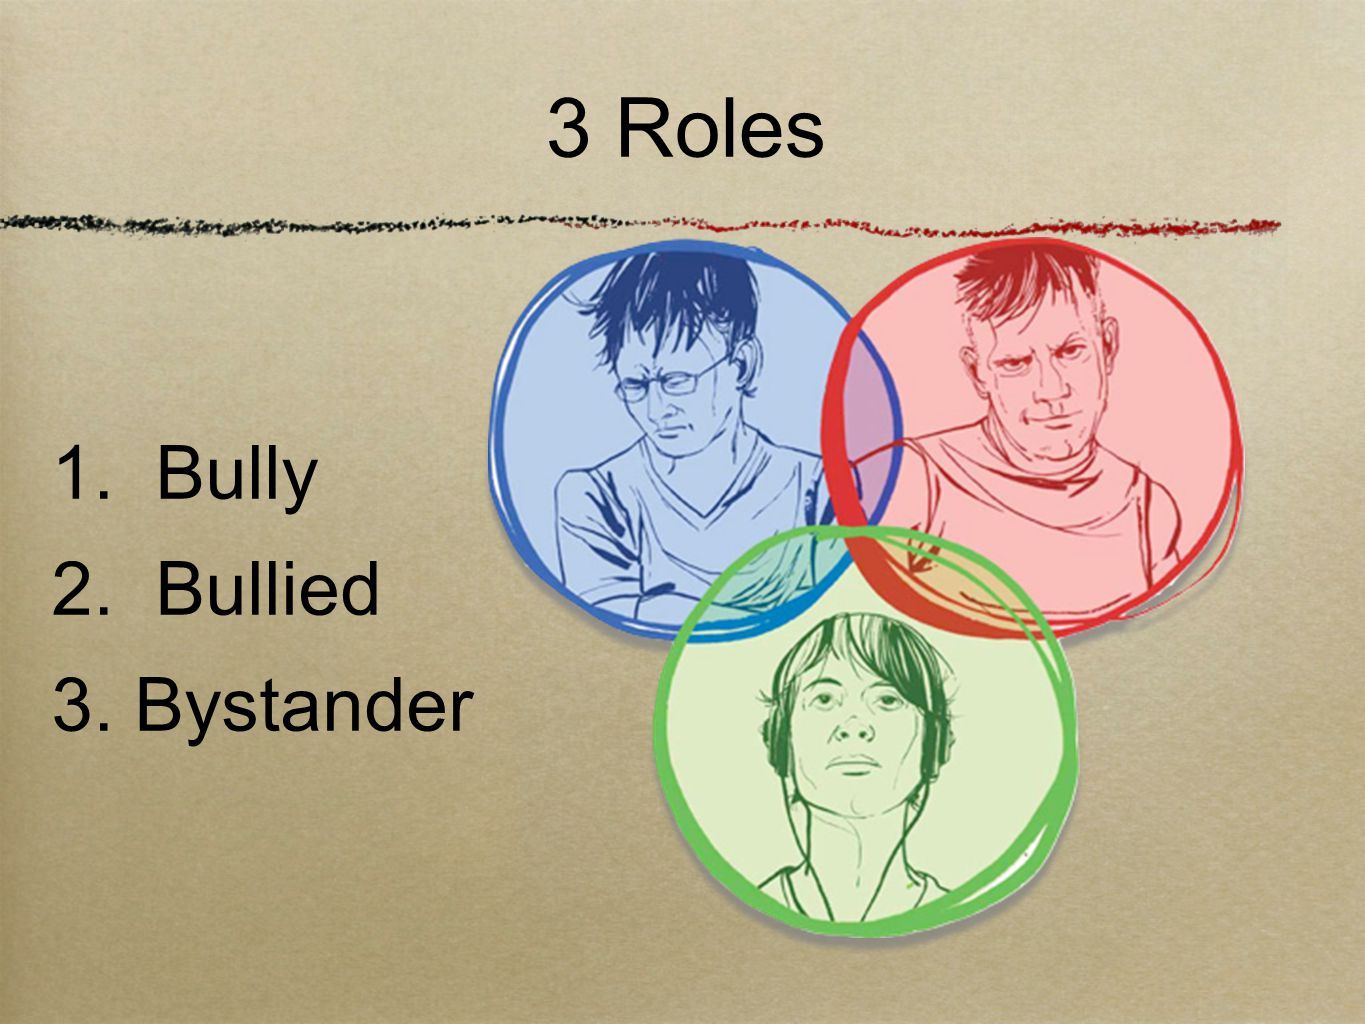 3 Roles 1. Bully 2. Bullied 3. Bystander